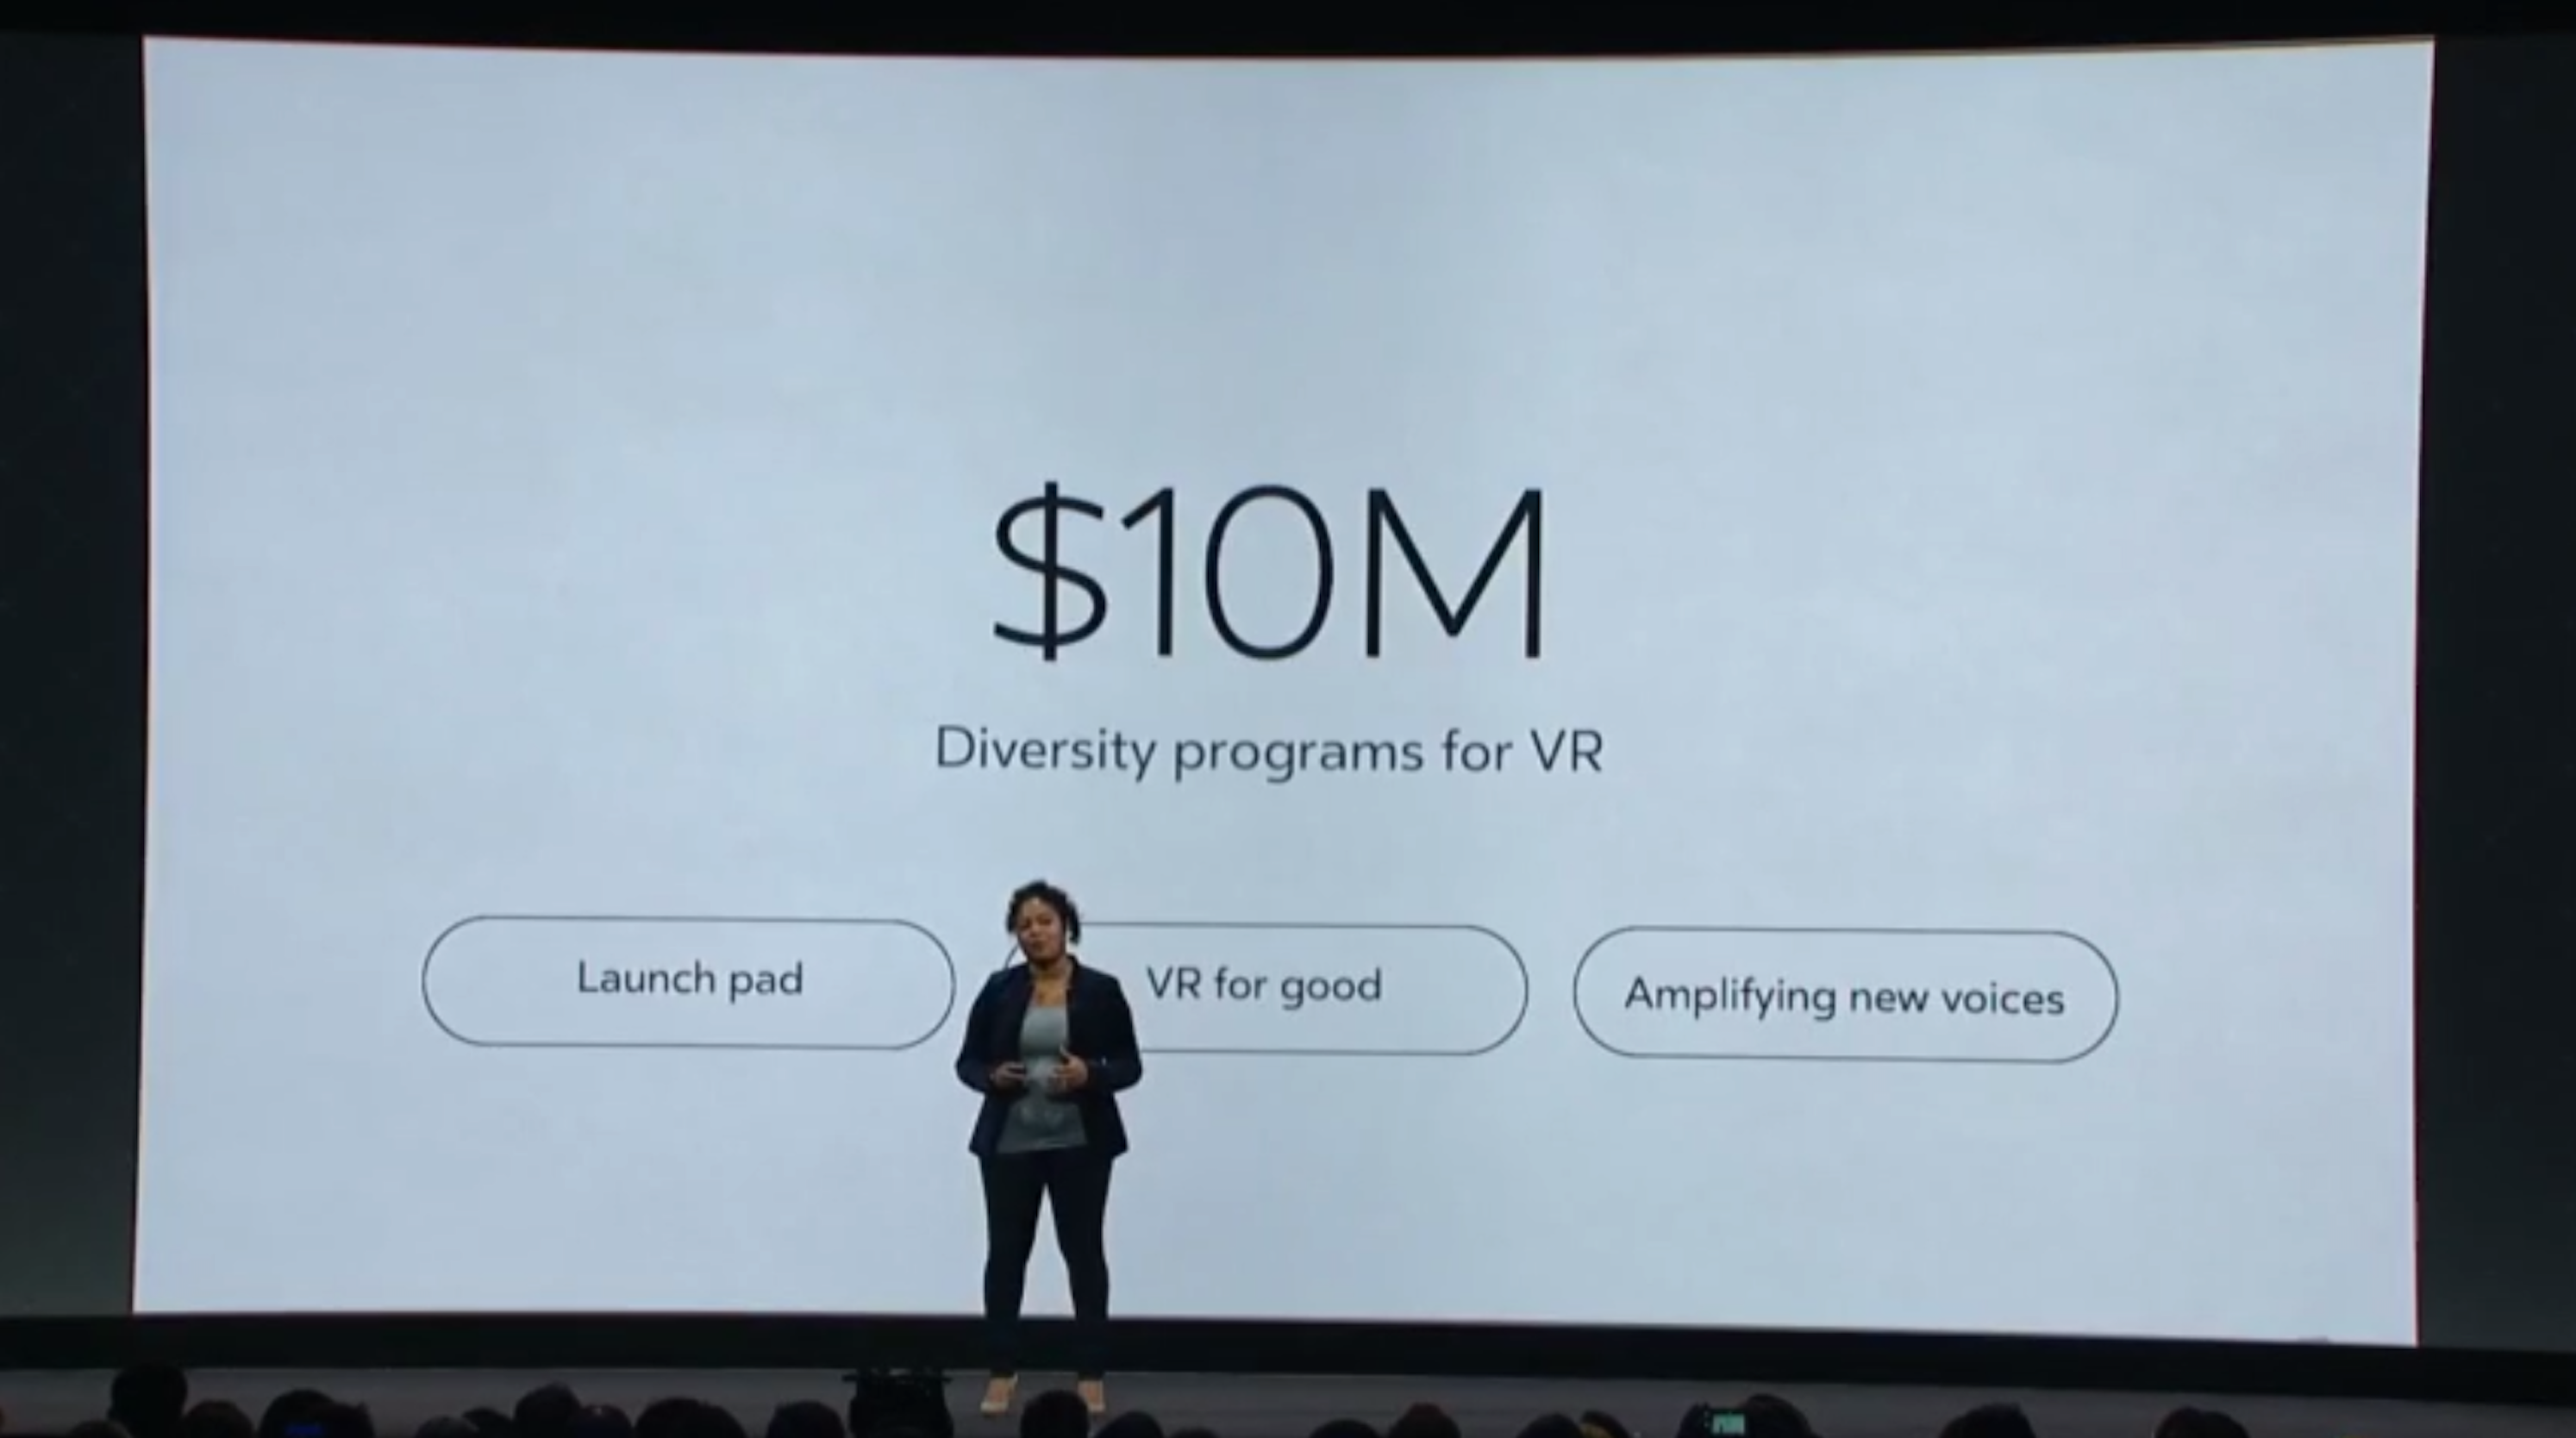 Oculus pledged $10 million towards diversity programs for virtual reality.